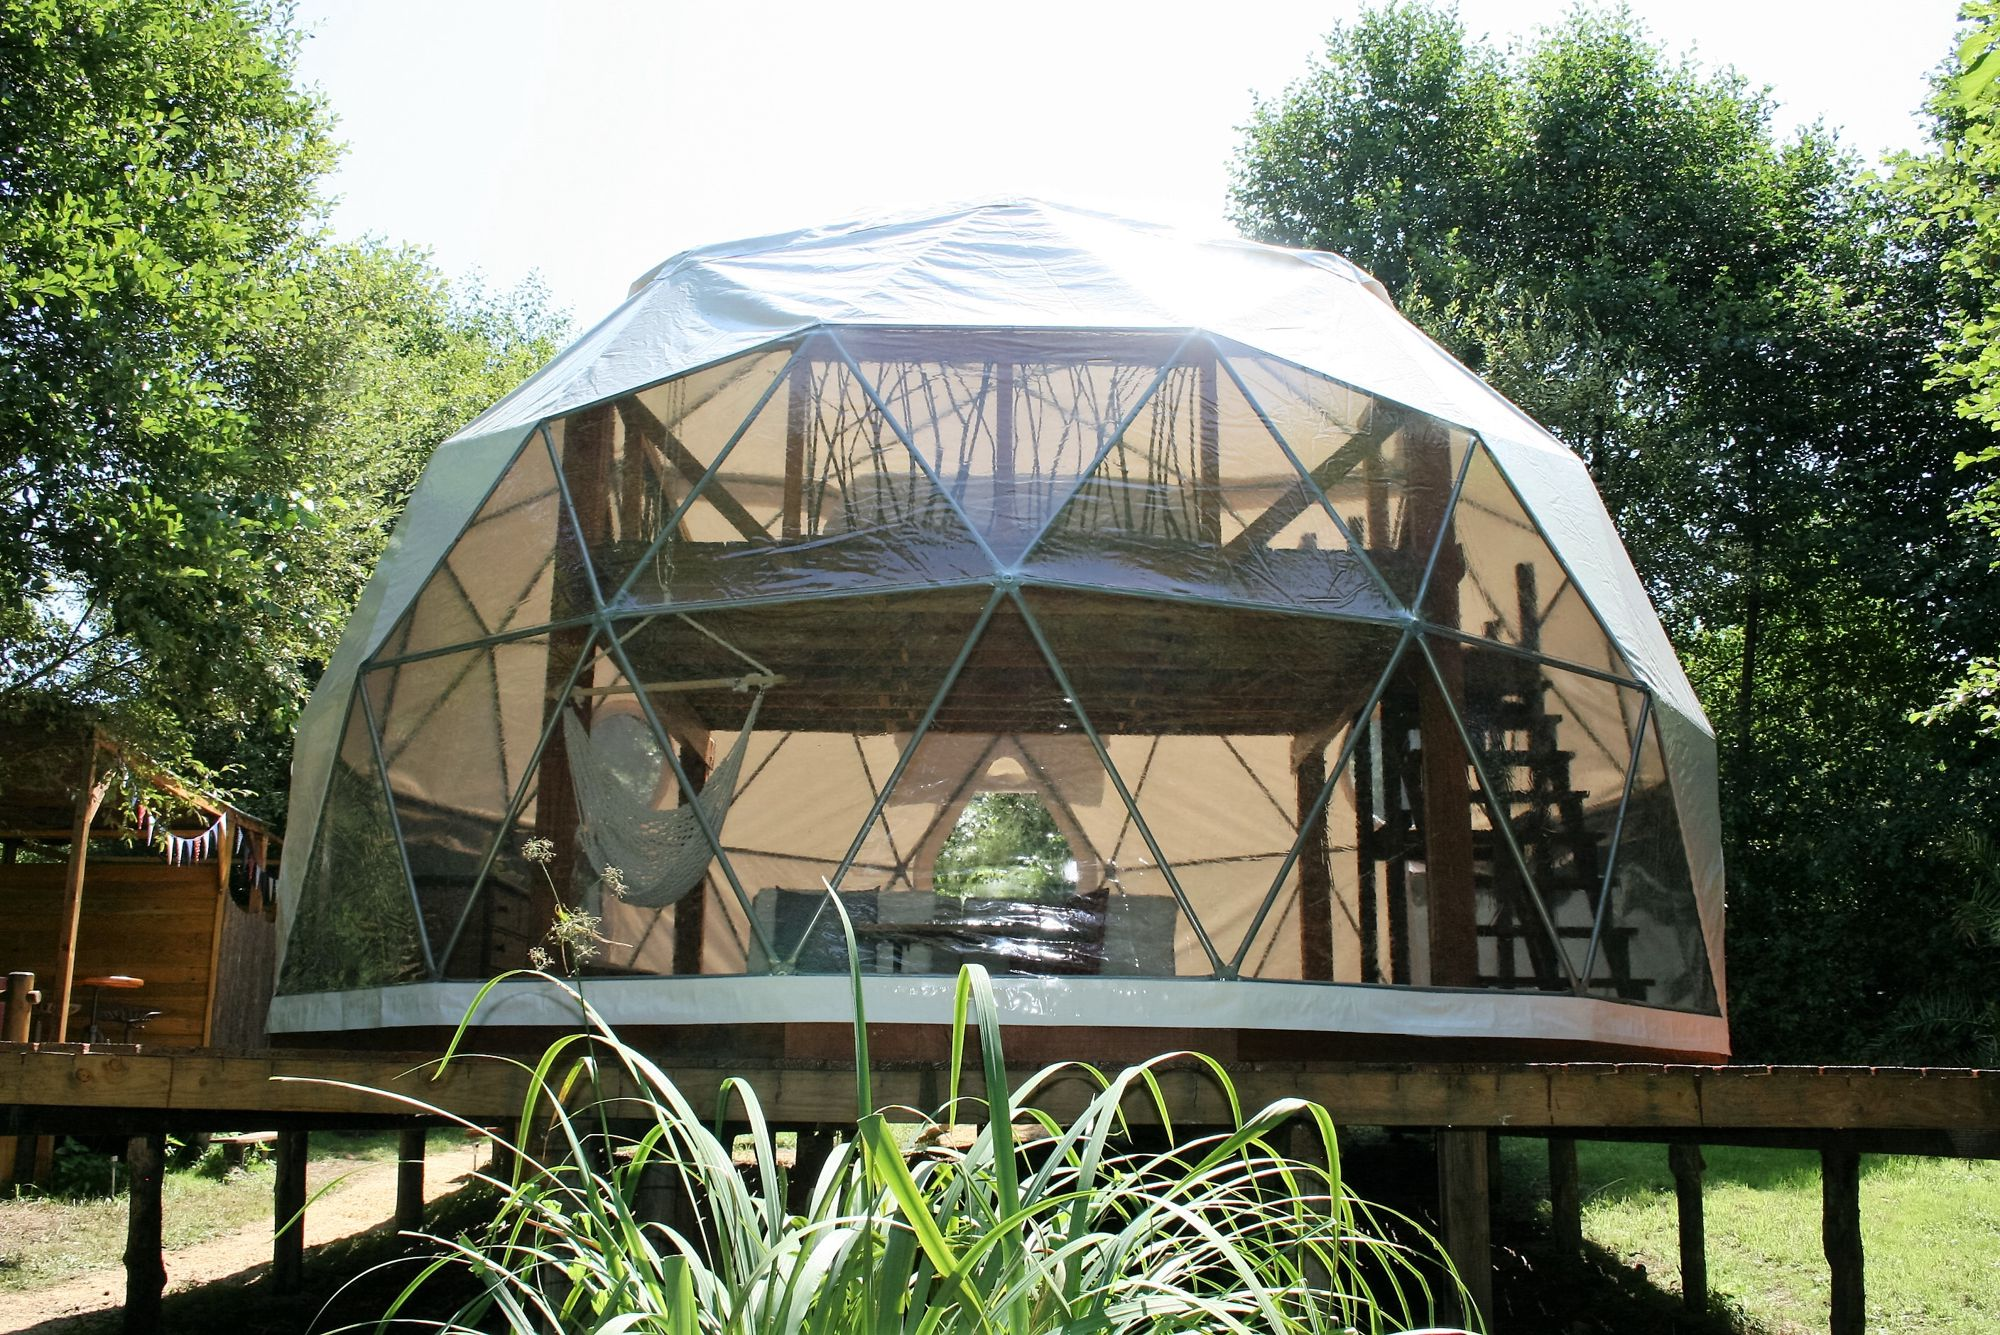 Limousin Glamping: A luxury dome right on the banks of the River Boucheuse with a supreme set-up for star-gazing and beautiful scenery to boot.